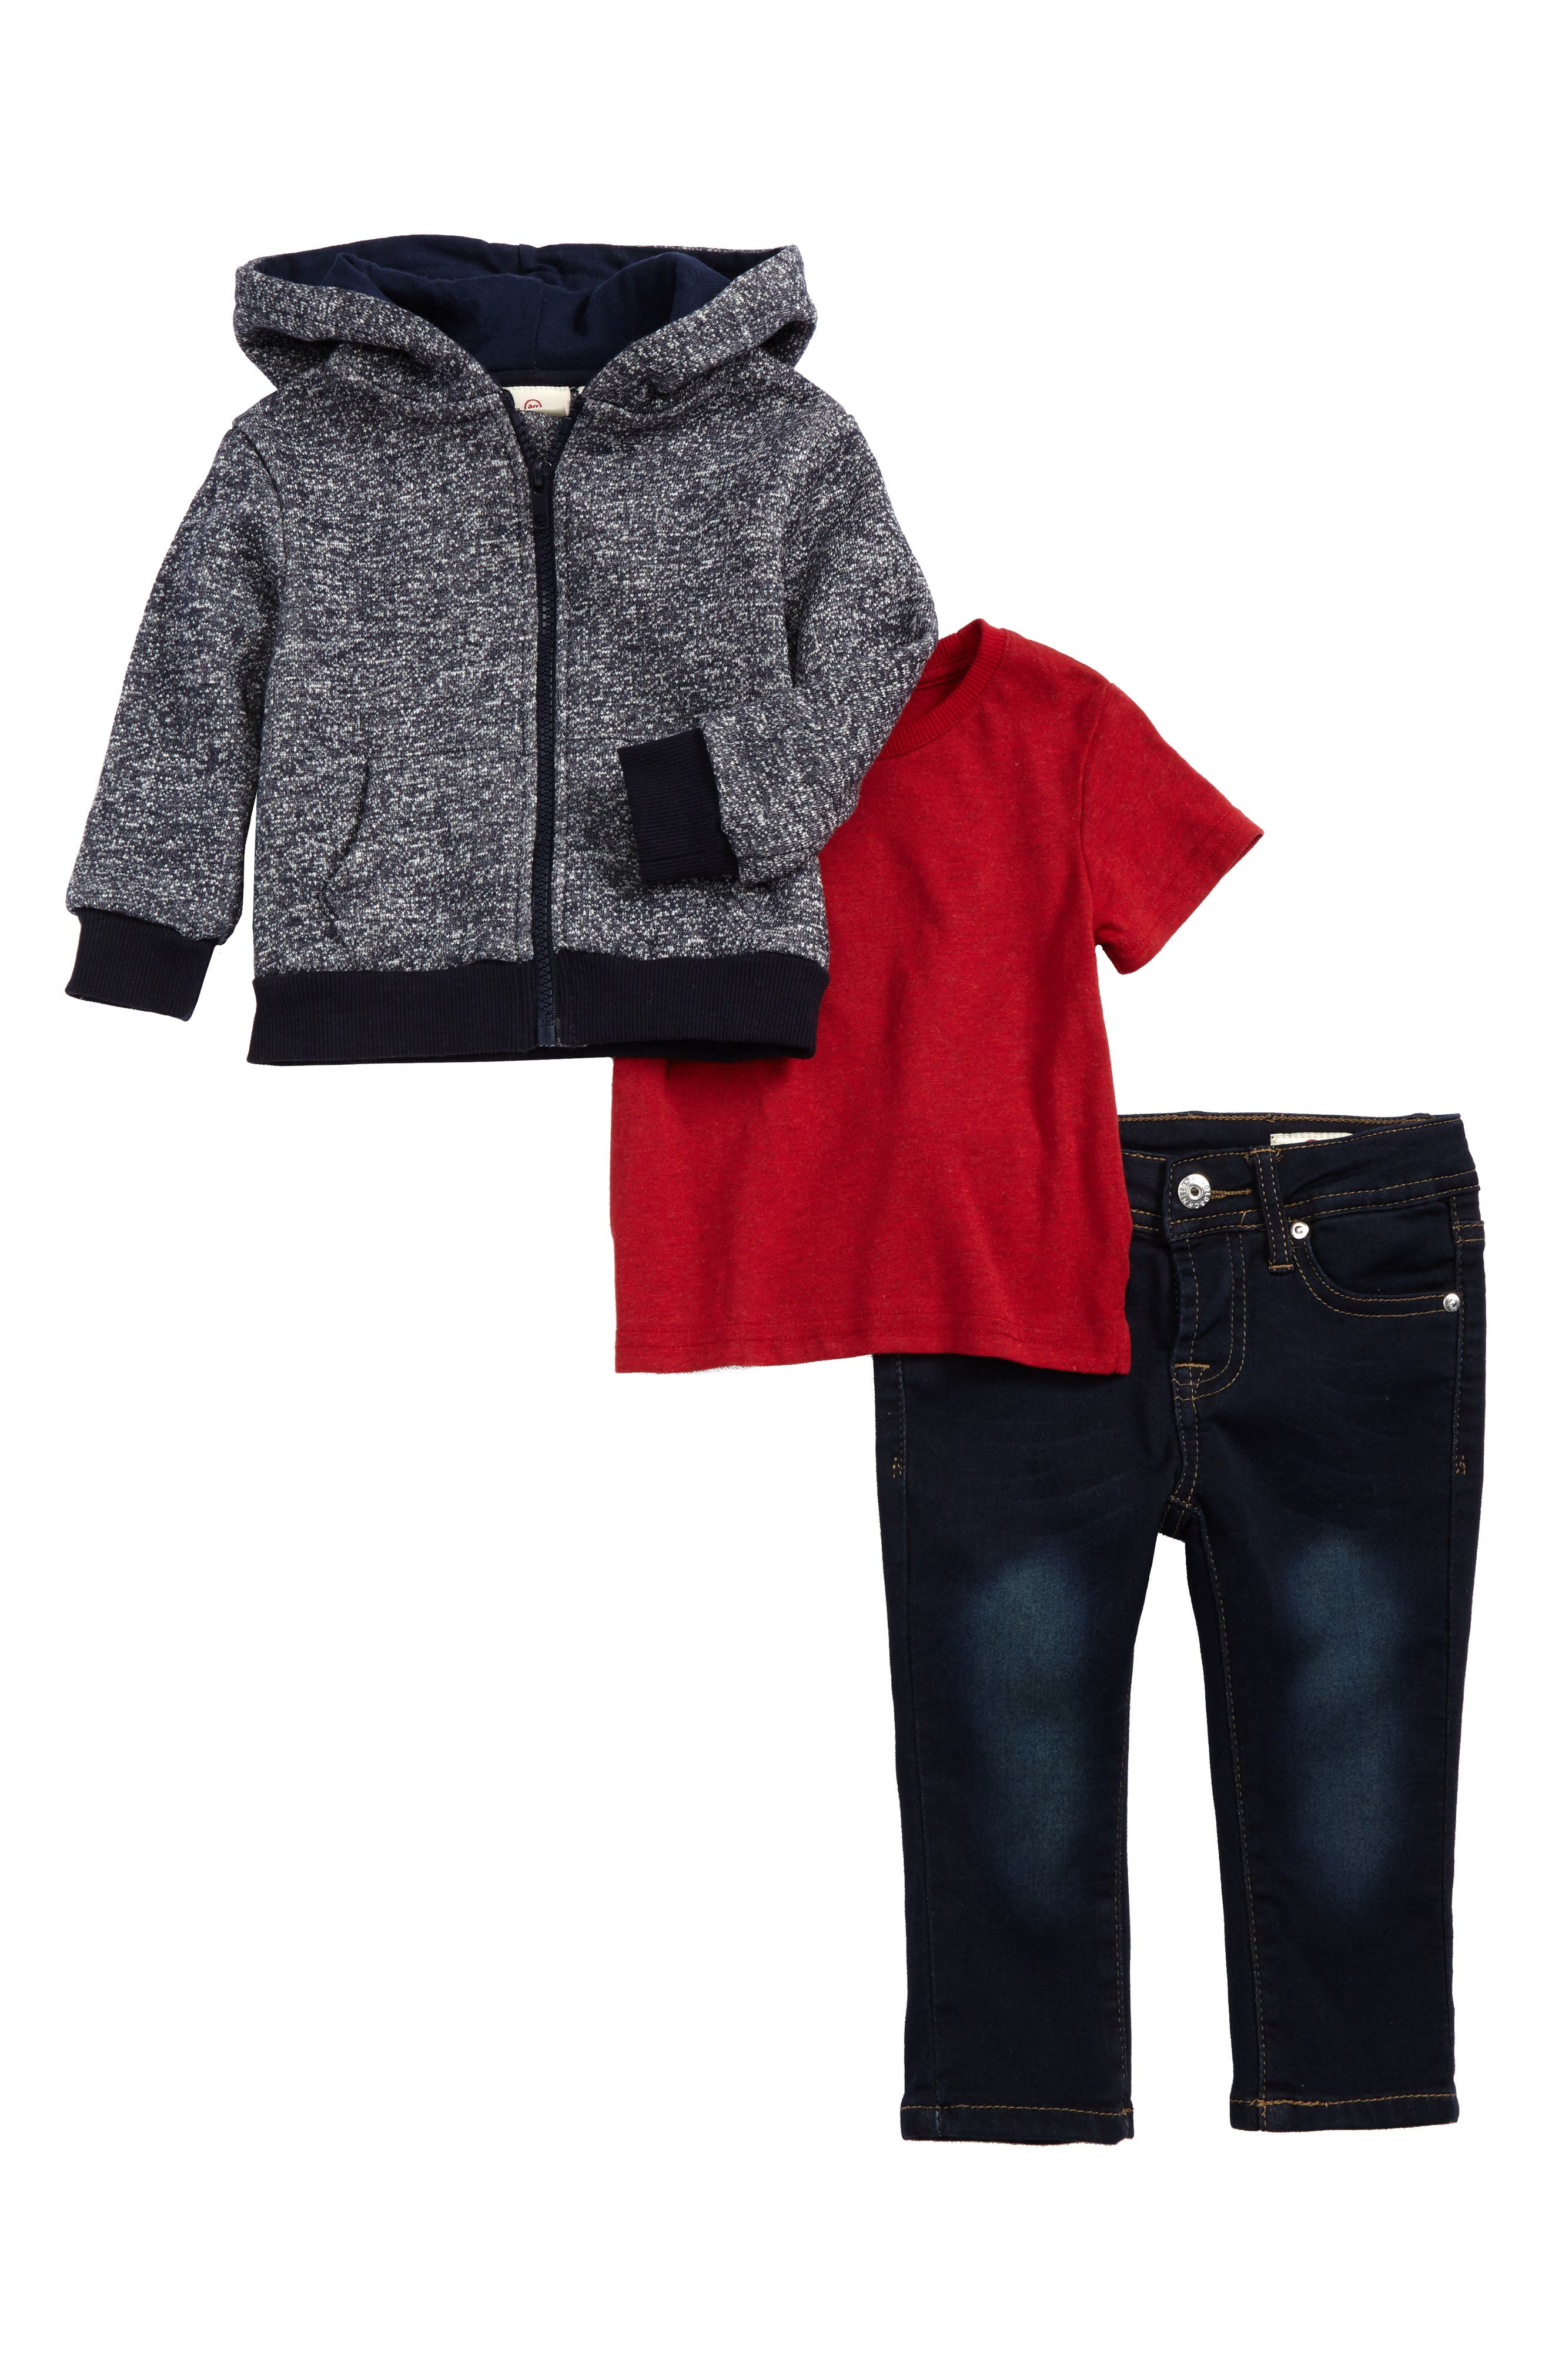 Main Image - ag adriano goldschmied kids French Terry Hoodie, T-Shirt & Jeans Set (Baby Boys)